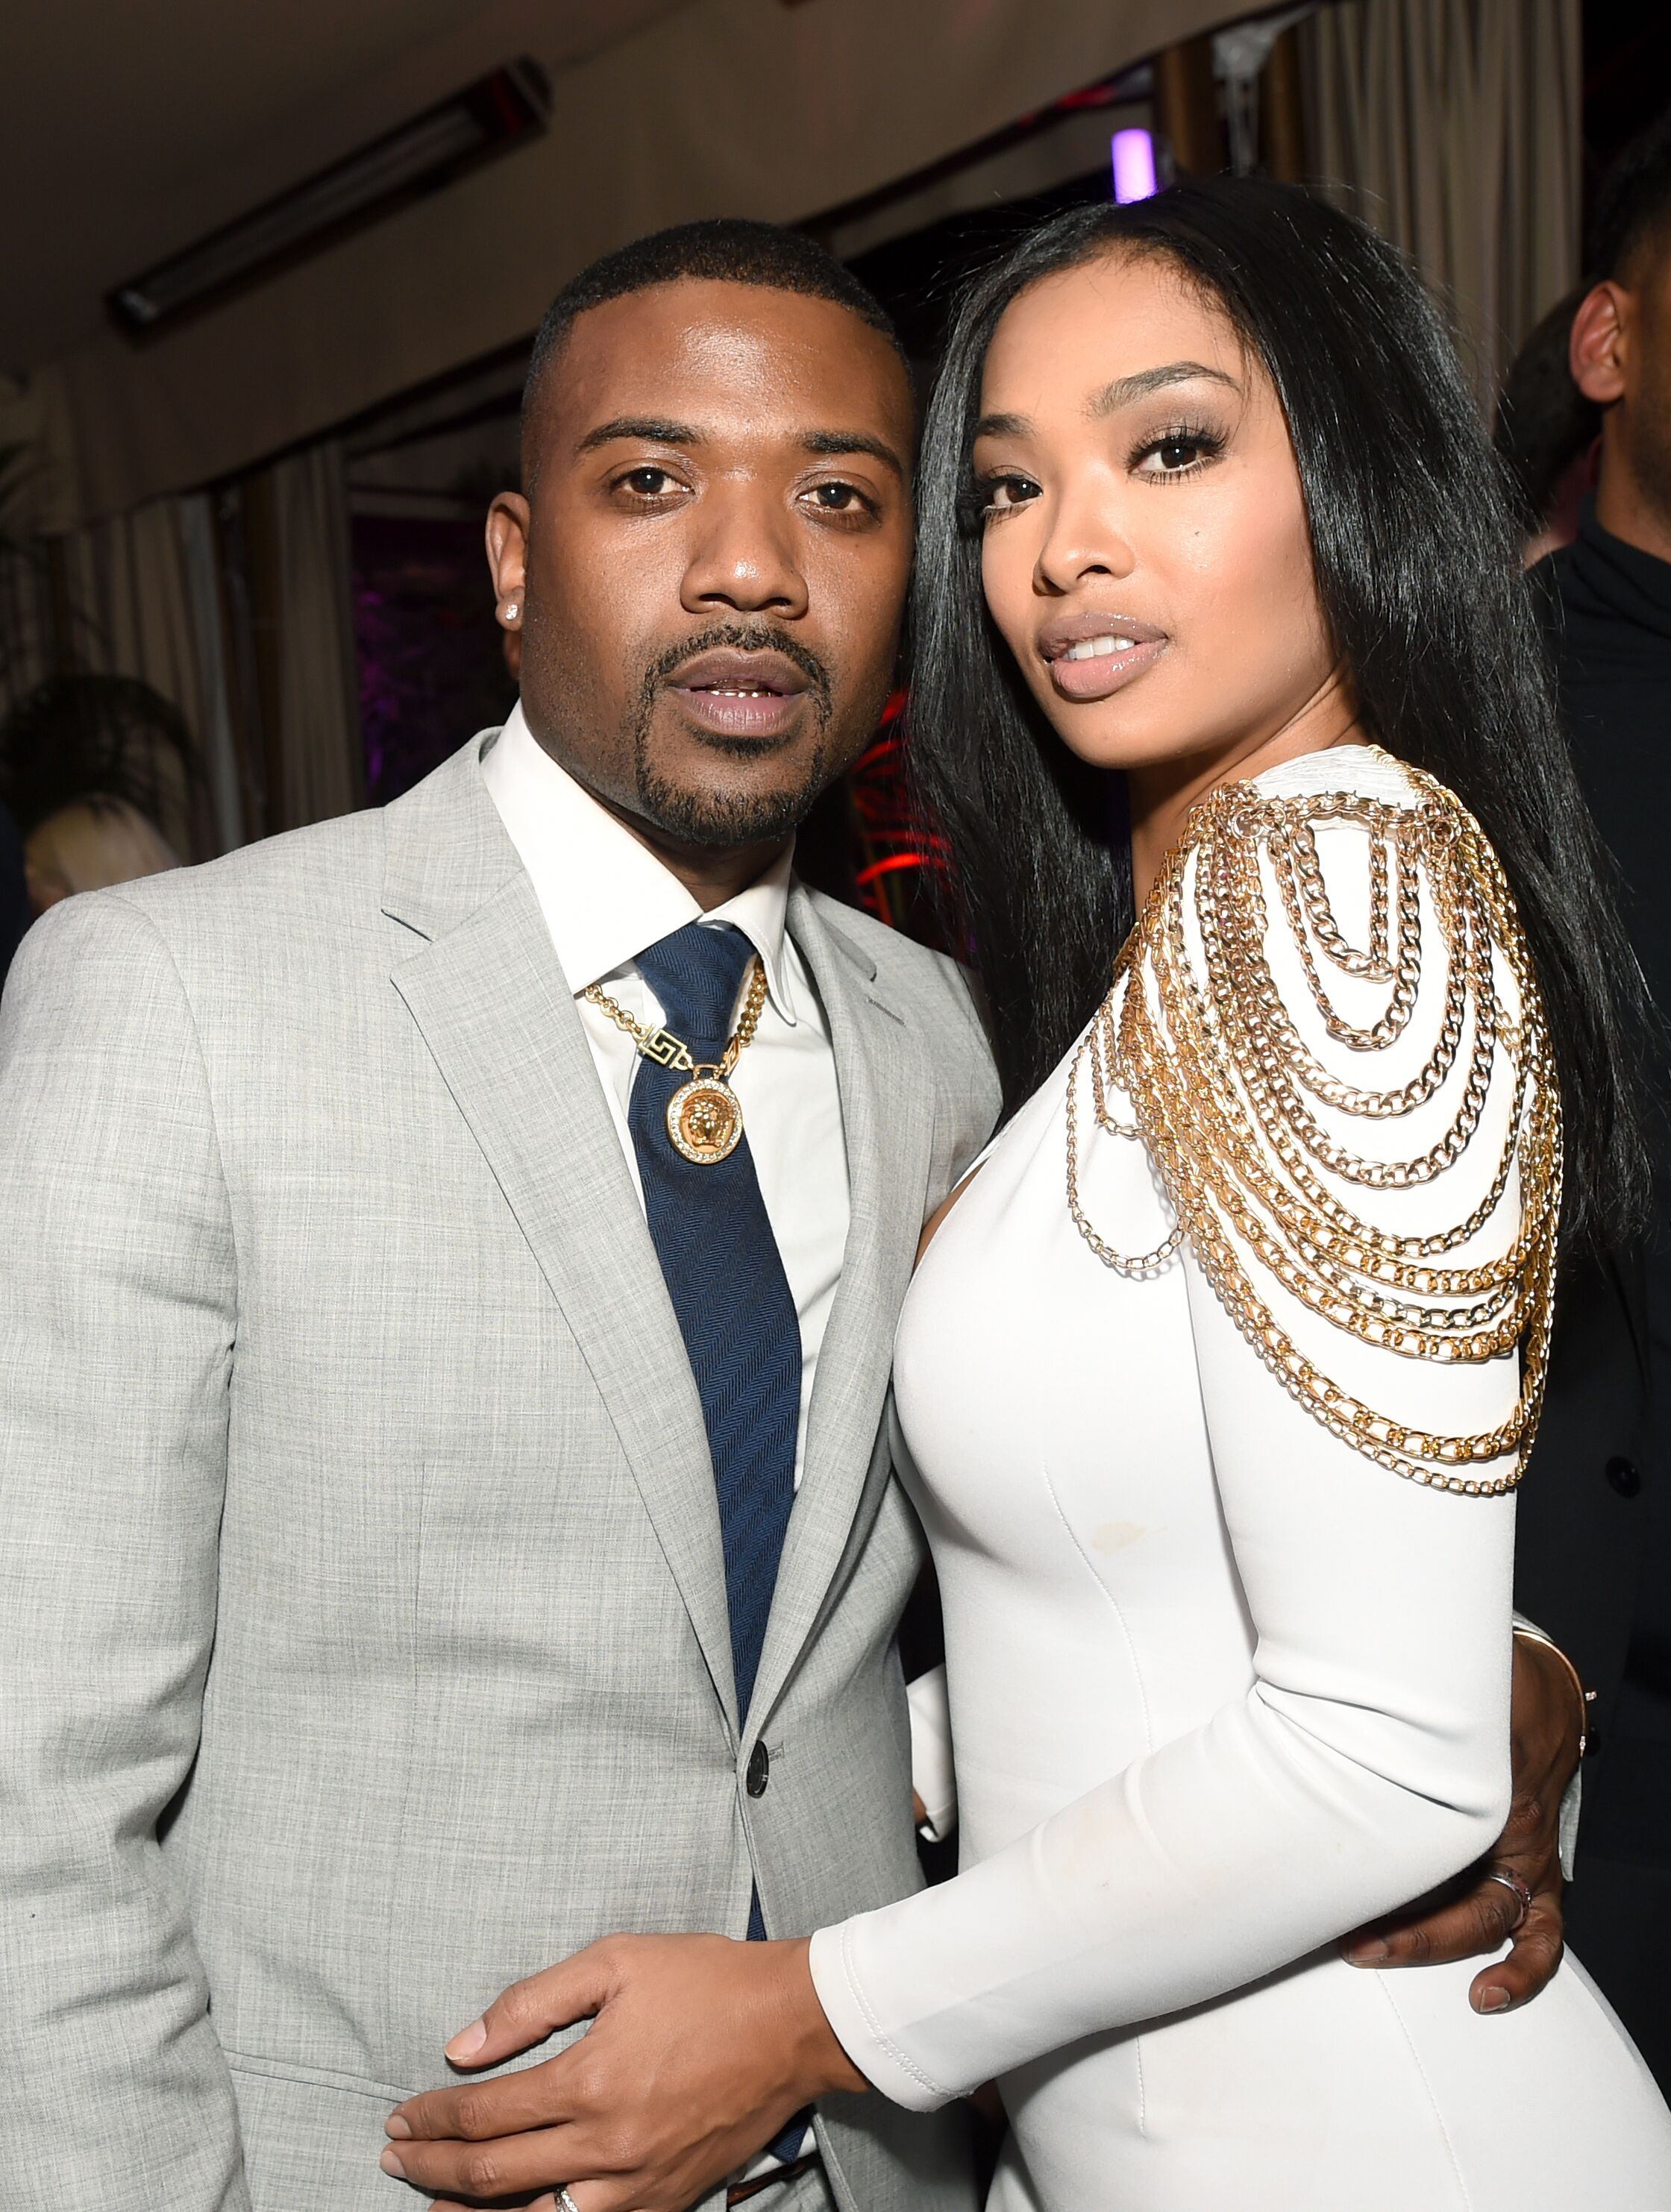 Ray J & Princess Love at Chateau Marmont on Feb. 12, 2017. | Source: Getty Images